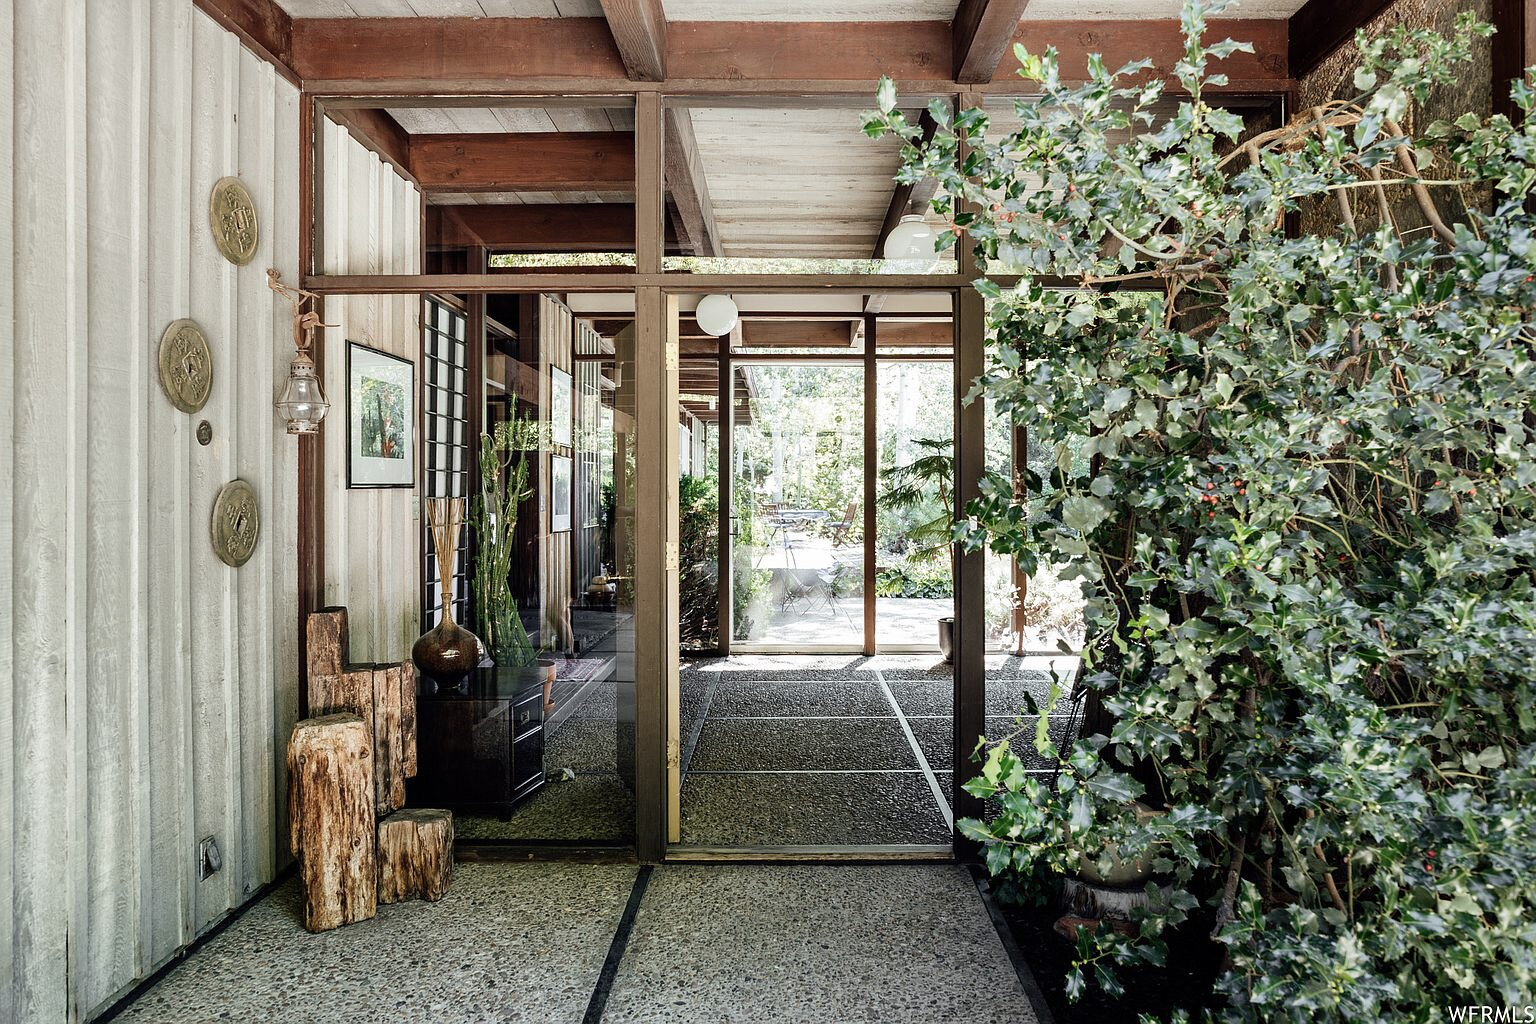 From the gravel driveway, the main entrance opens into a central vestibule, with views of the lush backyard visible through the glass walls straight ahead. Square-shaped slabs of concrete bordered by wood are repeated throughout the interior and exterior.  Photo 2 of 18 in This Tranquil, Japanese-Inspired Midcentury Home Asks $1.2M